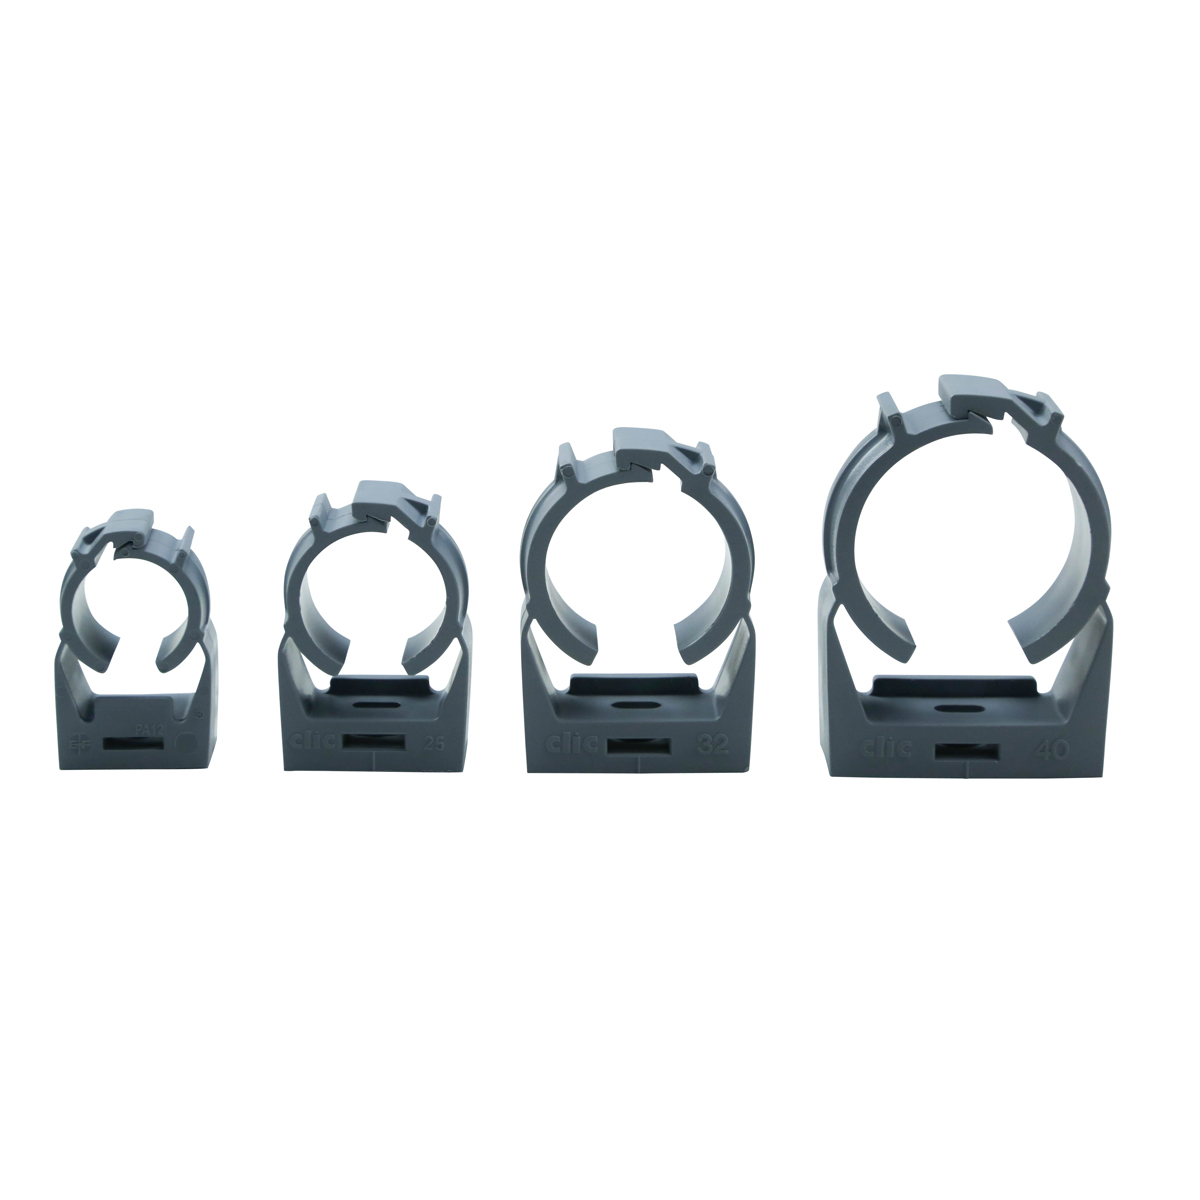 Surface Mounting Clamp For Pvc Pipe Bulk Reef Supply